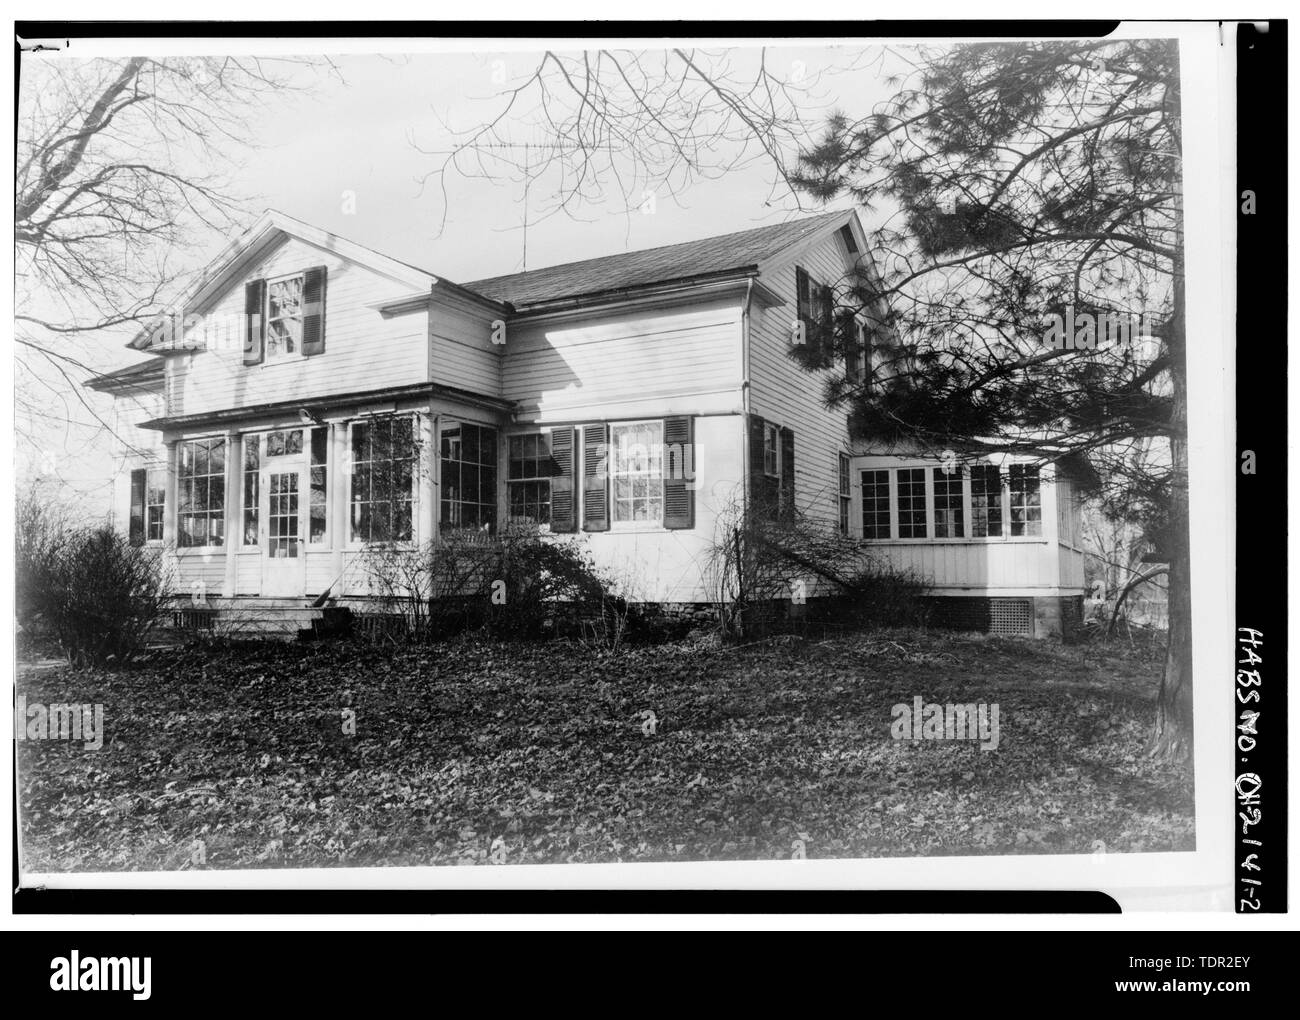 Photograph of photograph by Steckel Photographers, February 10, 1973. Original print in Field Records. SOUTHEAST ELEVATION, GENERAL VIEW. - Abbott-Page House, Mason Road, State Route 13 vicinity, Milan, Erie County, OH - Stock Image